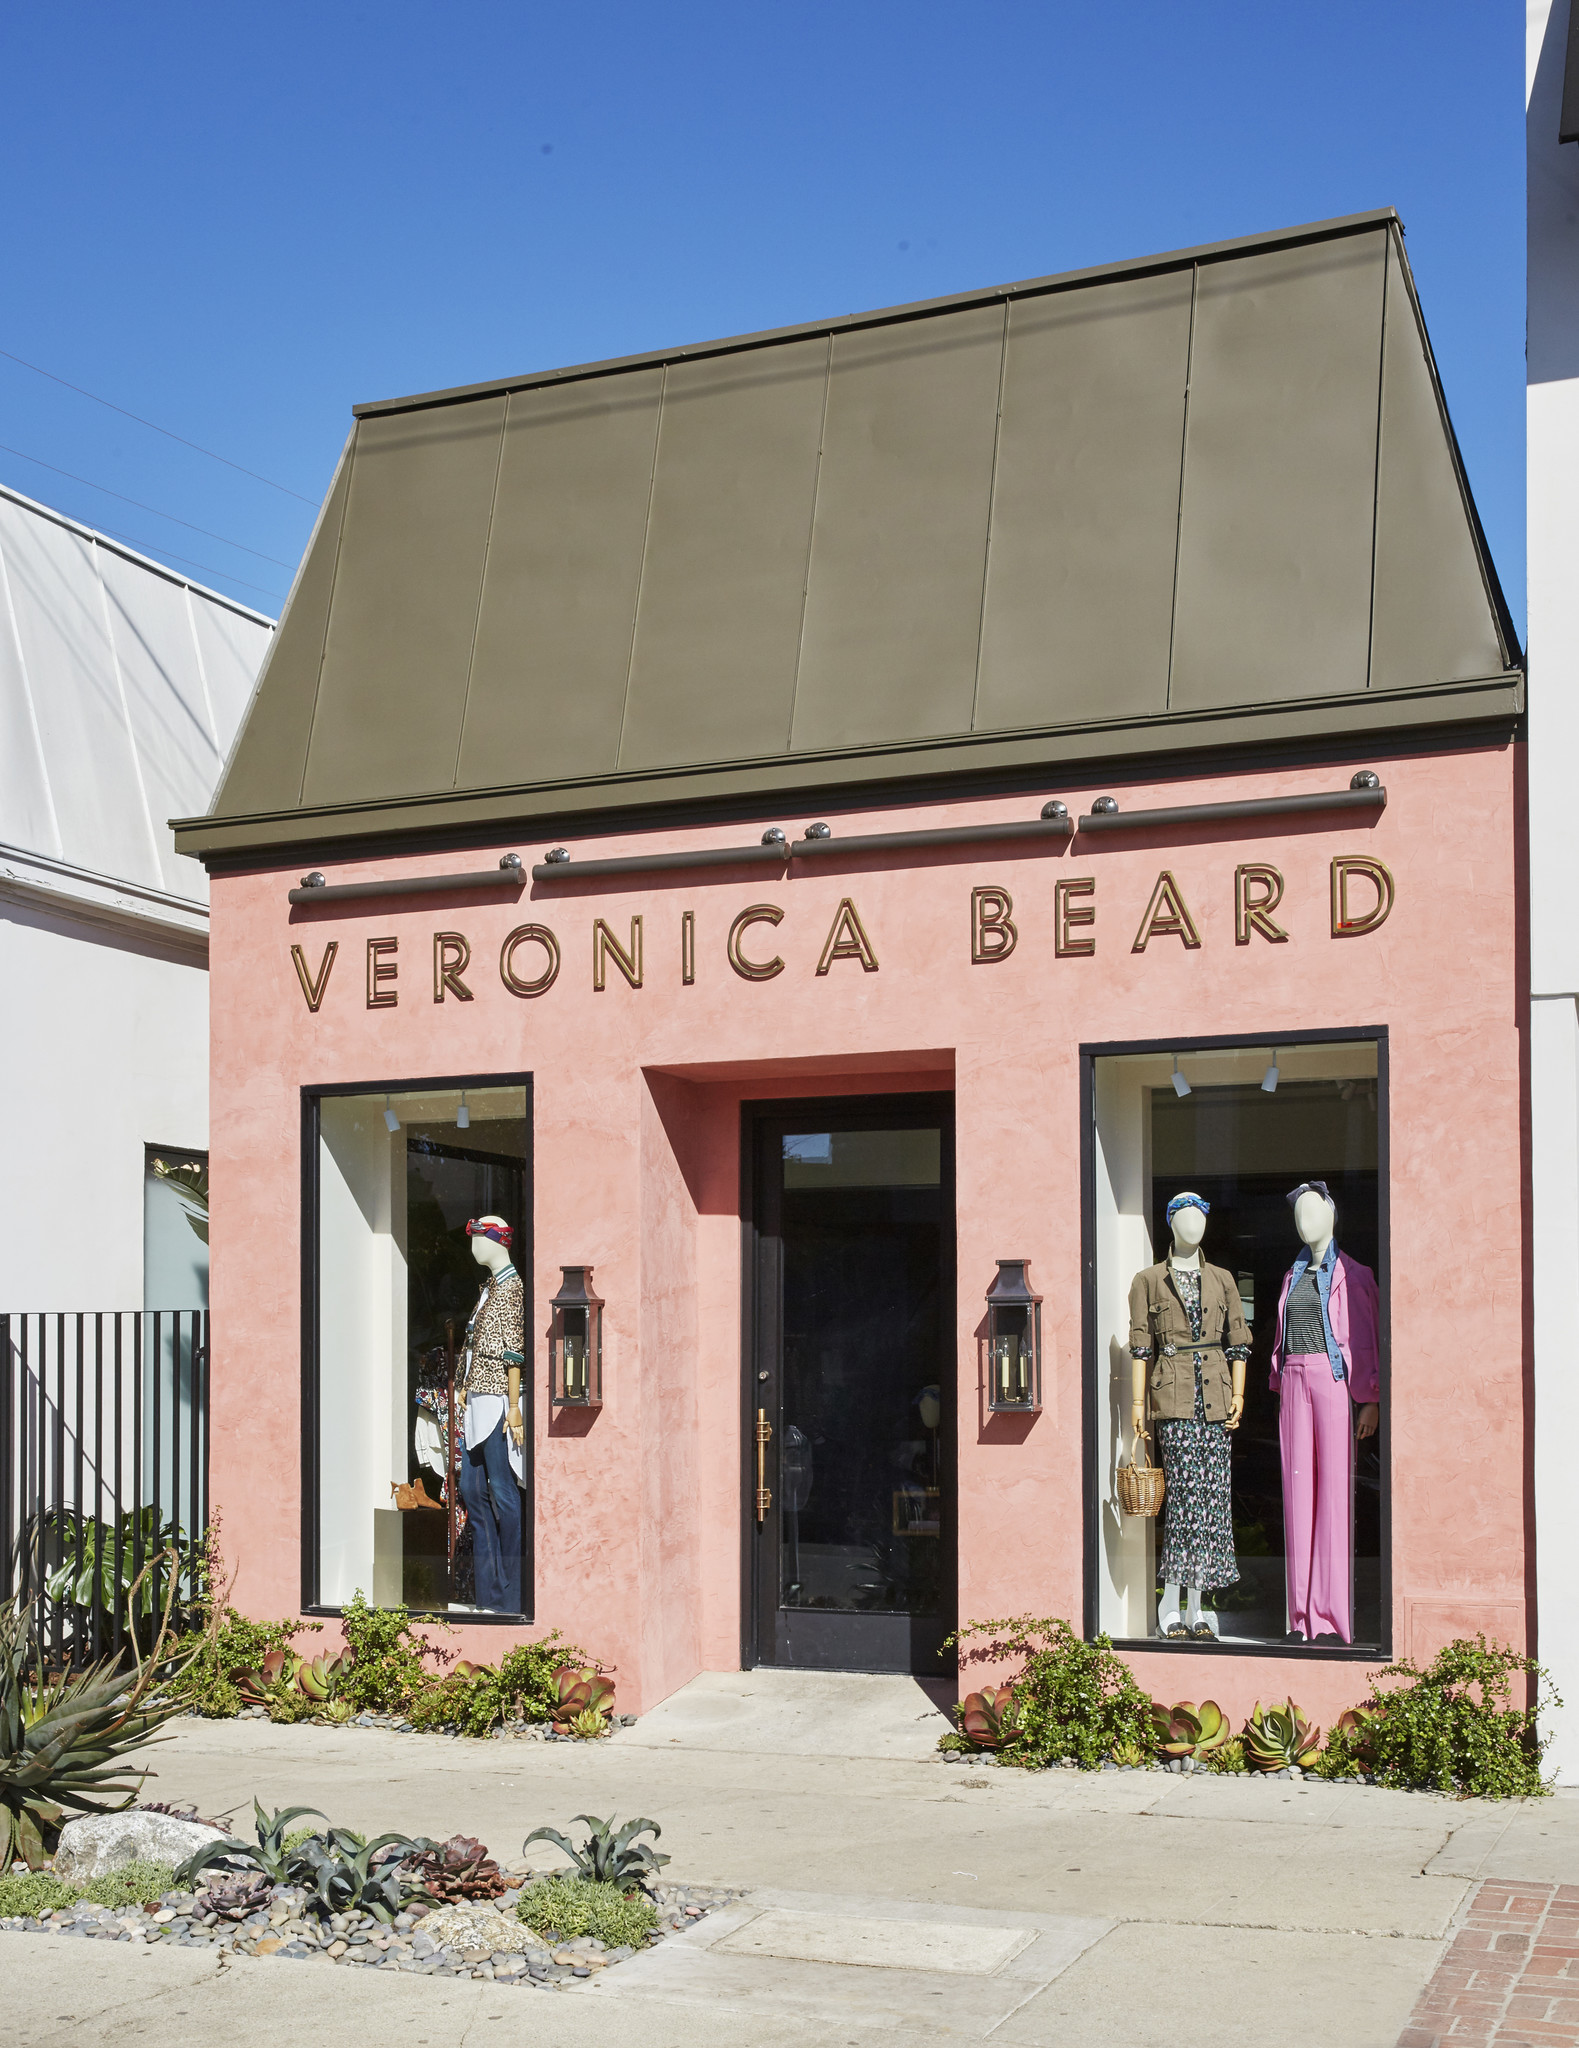 A look at the exterior of the new Veronica Beard store on Melrose Place in Los Angeles.